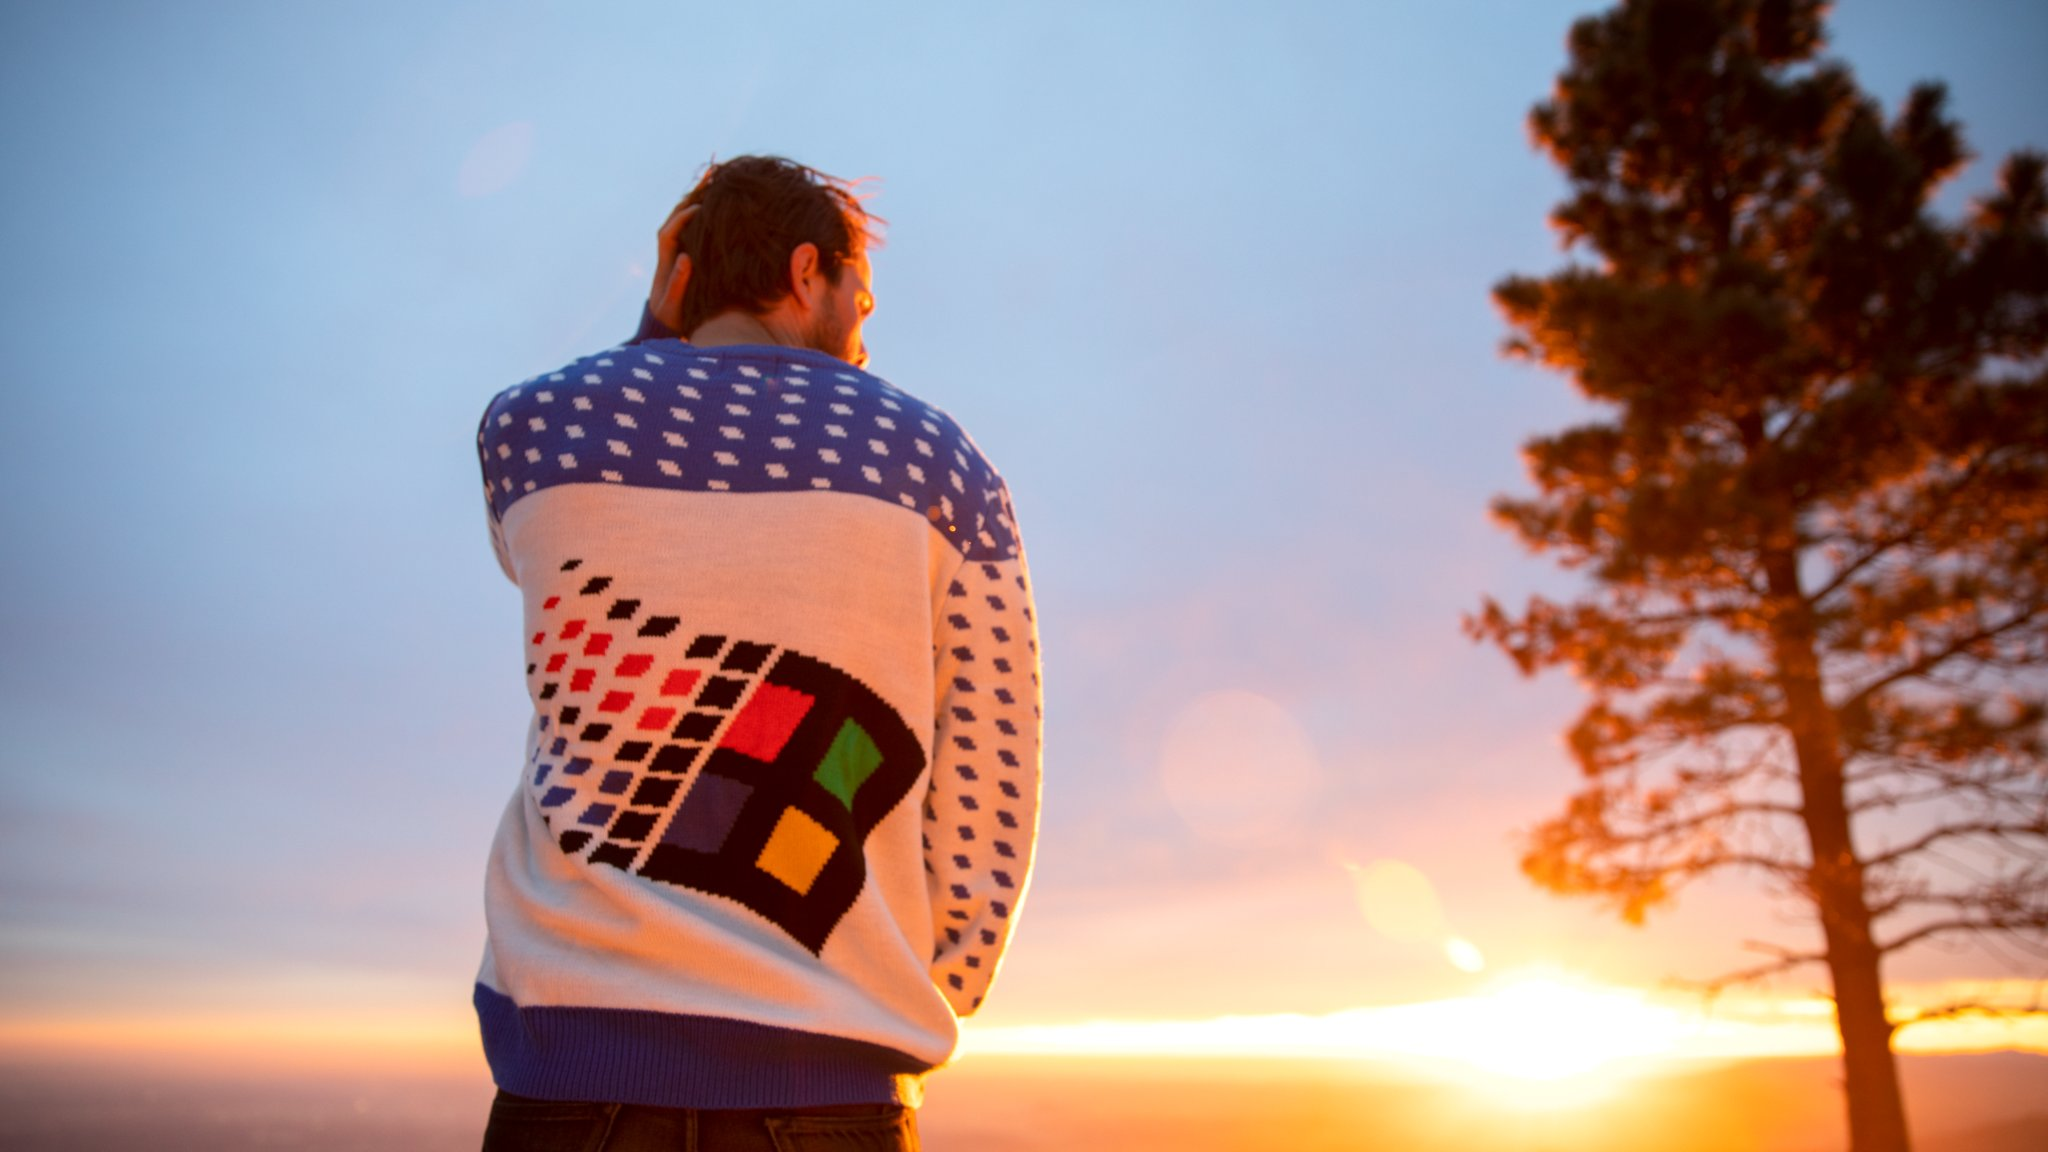 Windows 95 sweater